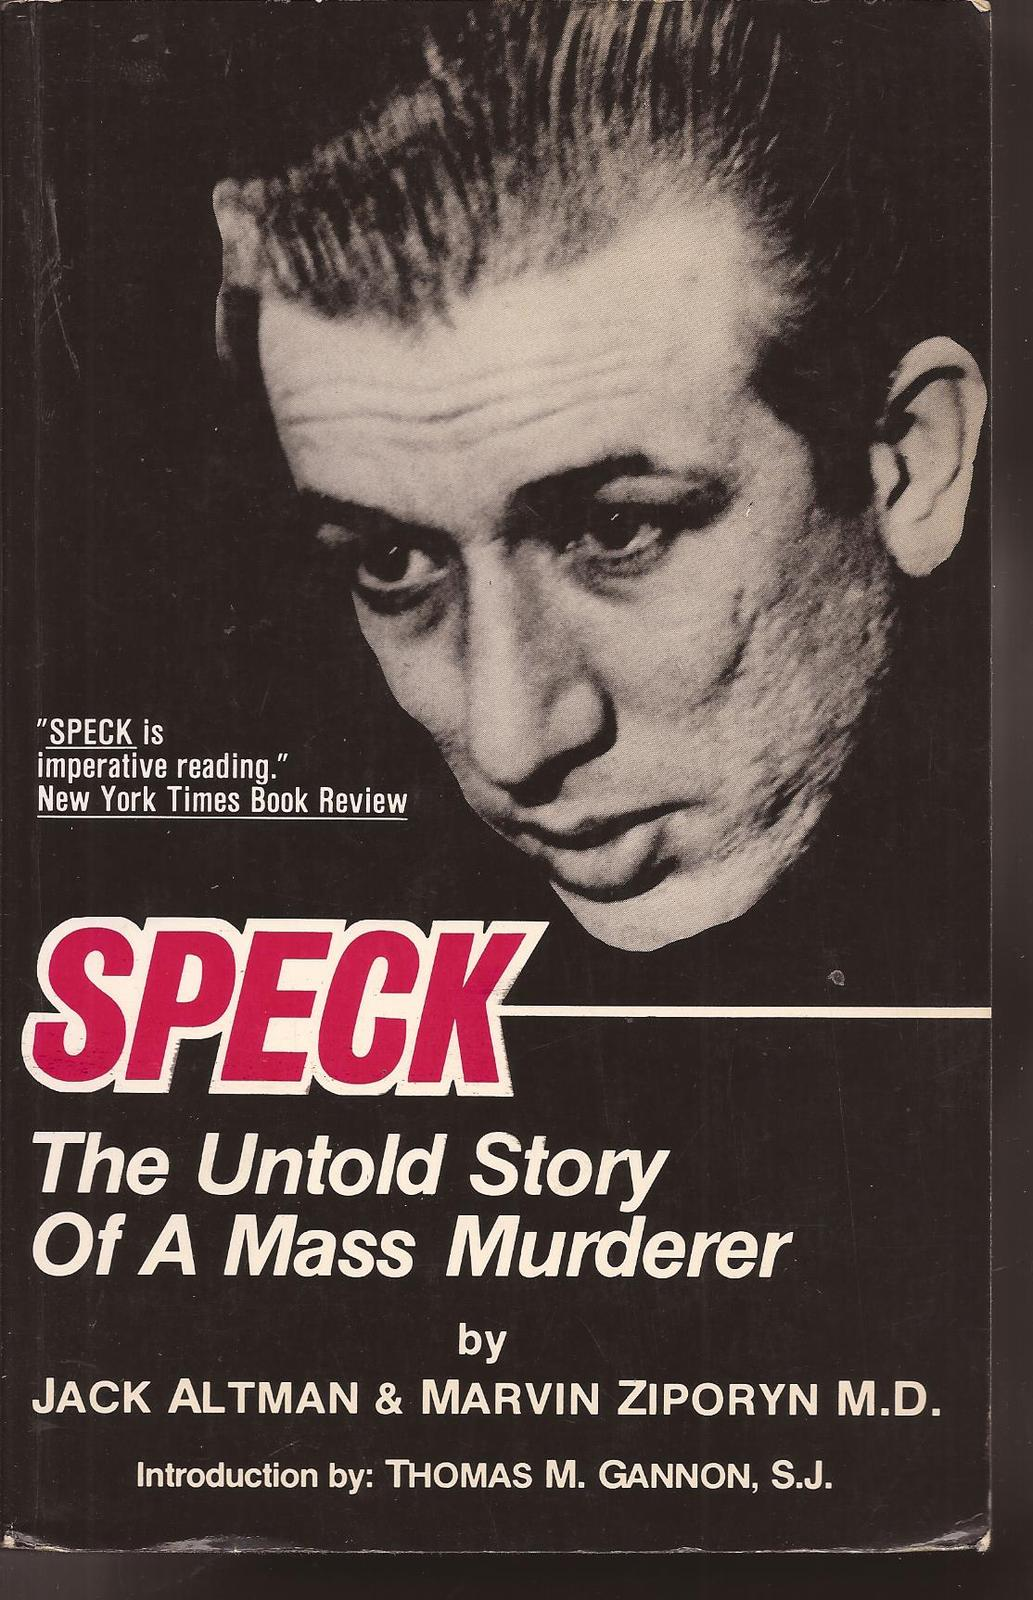 Primary image for Speck The Untold Story Of A Mass Murderer Jack Altman Hallberg Publishing 1984